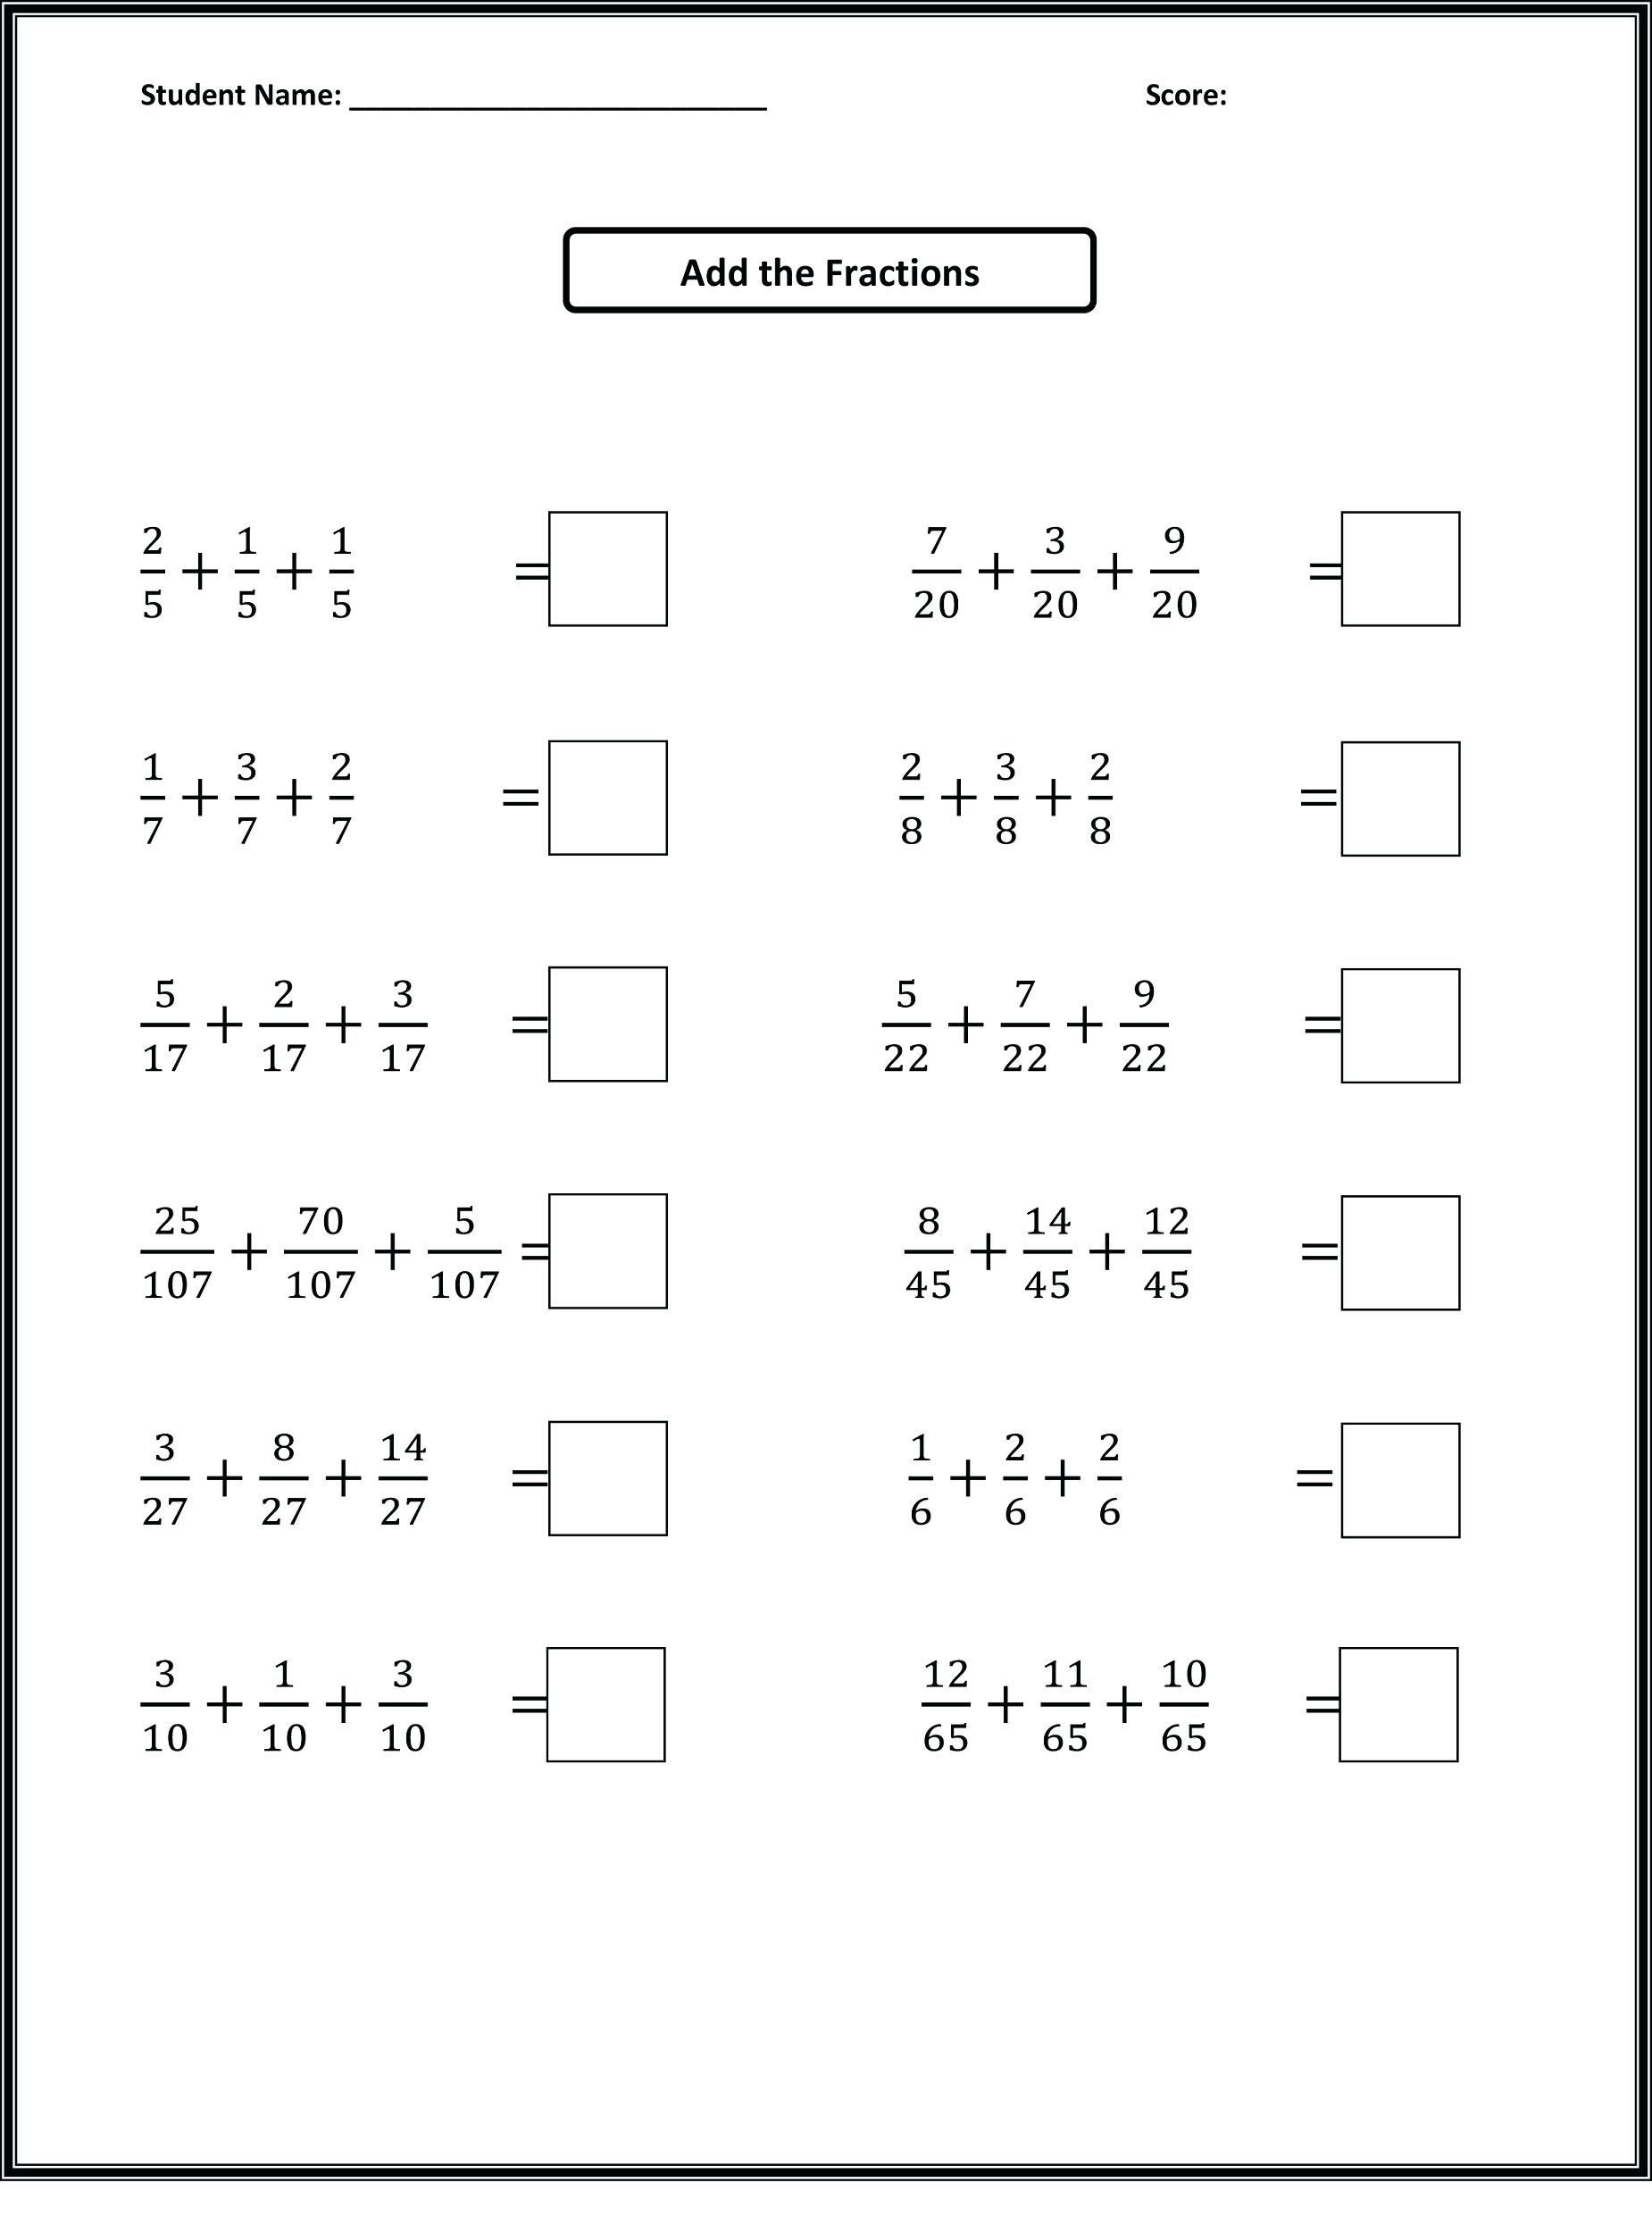 Fractions Worksheets Grade 4 Pdf Maths Worksheets for Grade Cbse Practice Class Pdfth Word